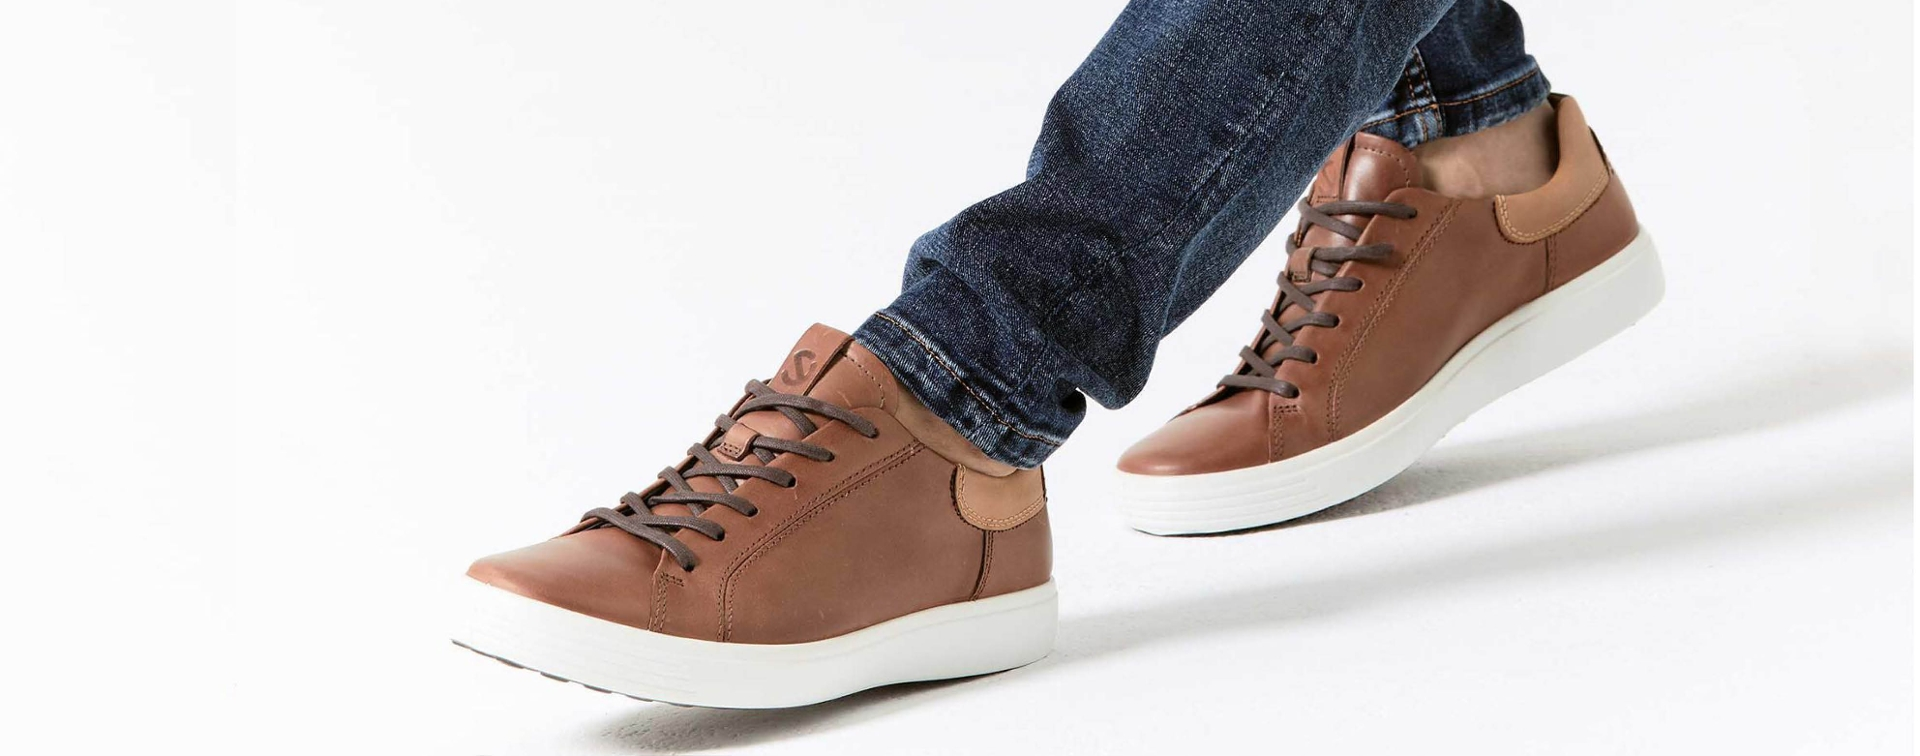 close up of brown leather sneaker on the foot.